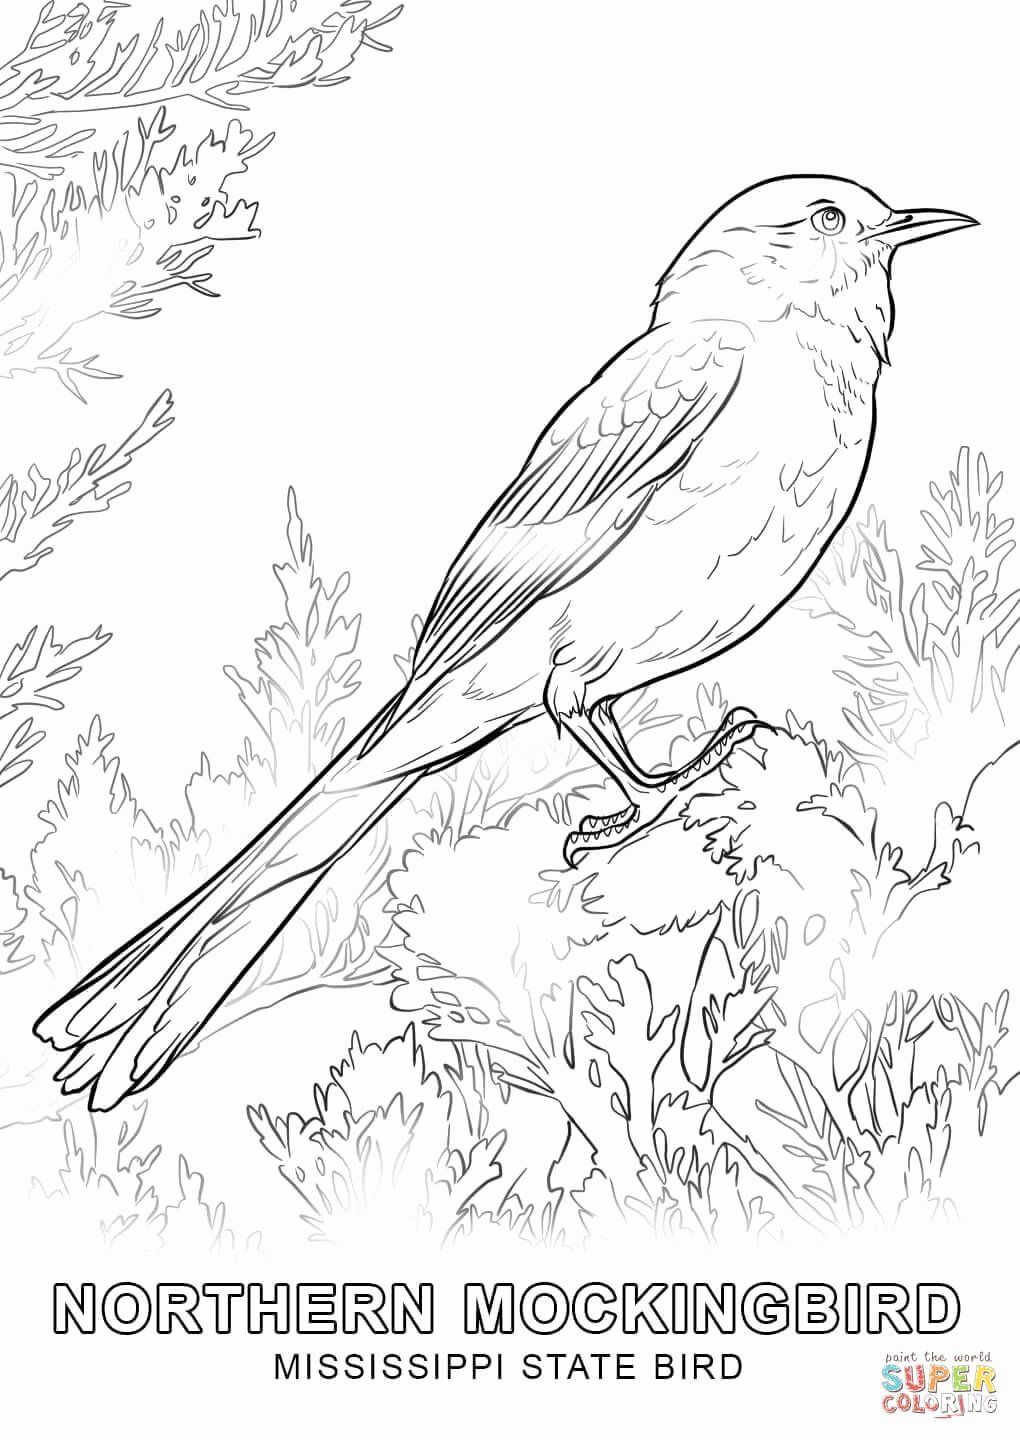 State Flower Coloring Pages Unique Northern Mockingbird Coloring Pages Lovely Mississippi State Florida Michigan Alabama